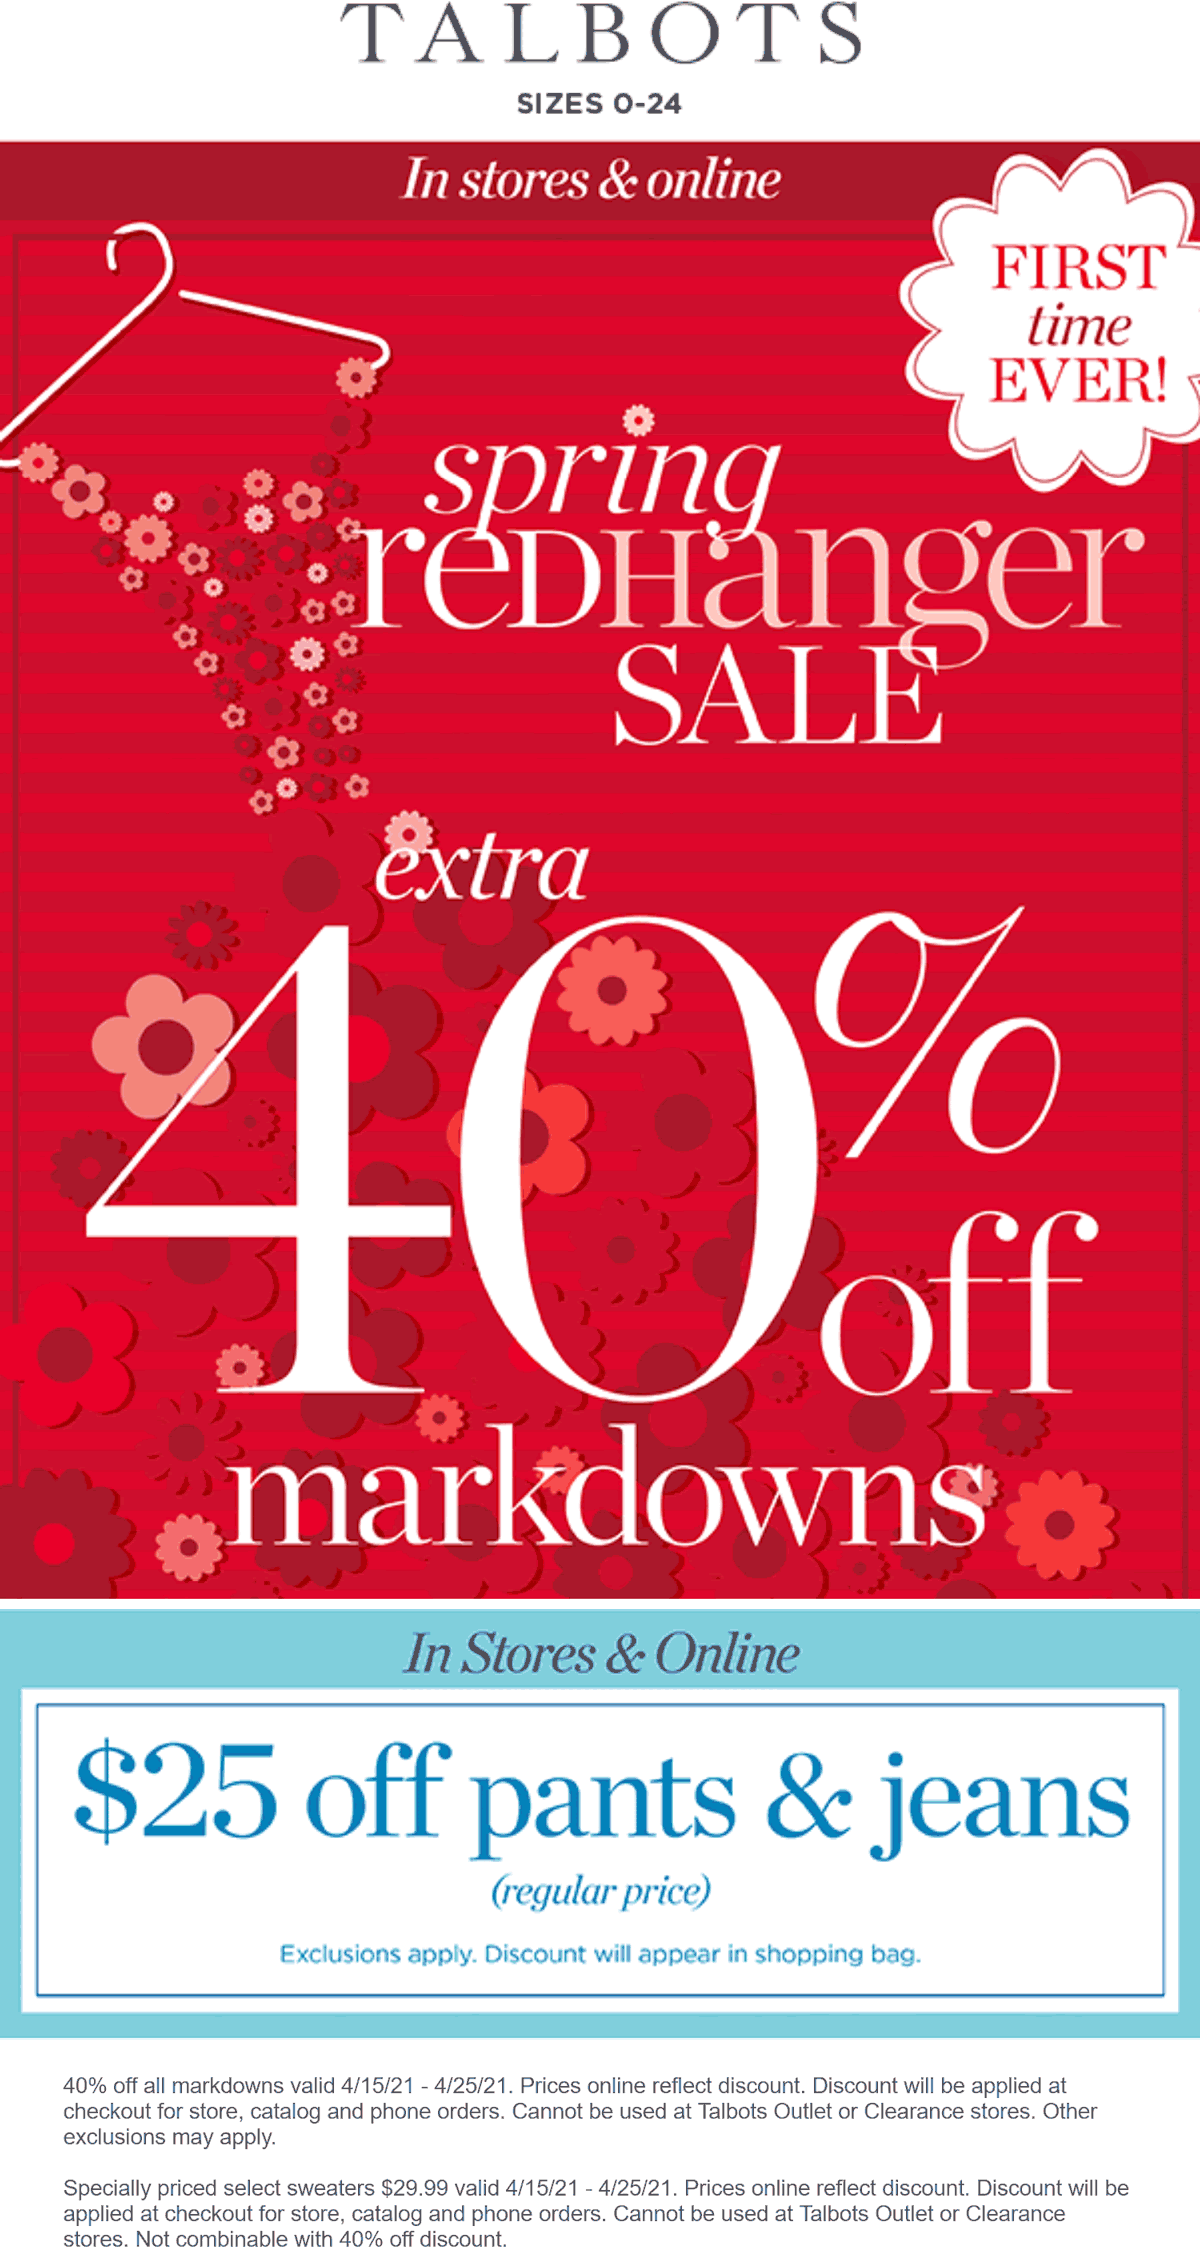 Talbots stores Coupon  $25 off pants, extra 40% off markdowns red hanger sale at Talbots, ditto online #talbots